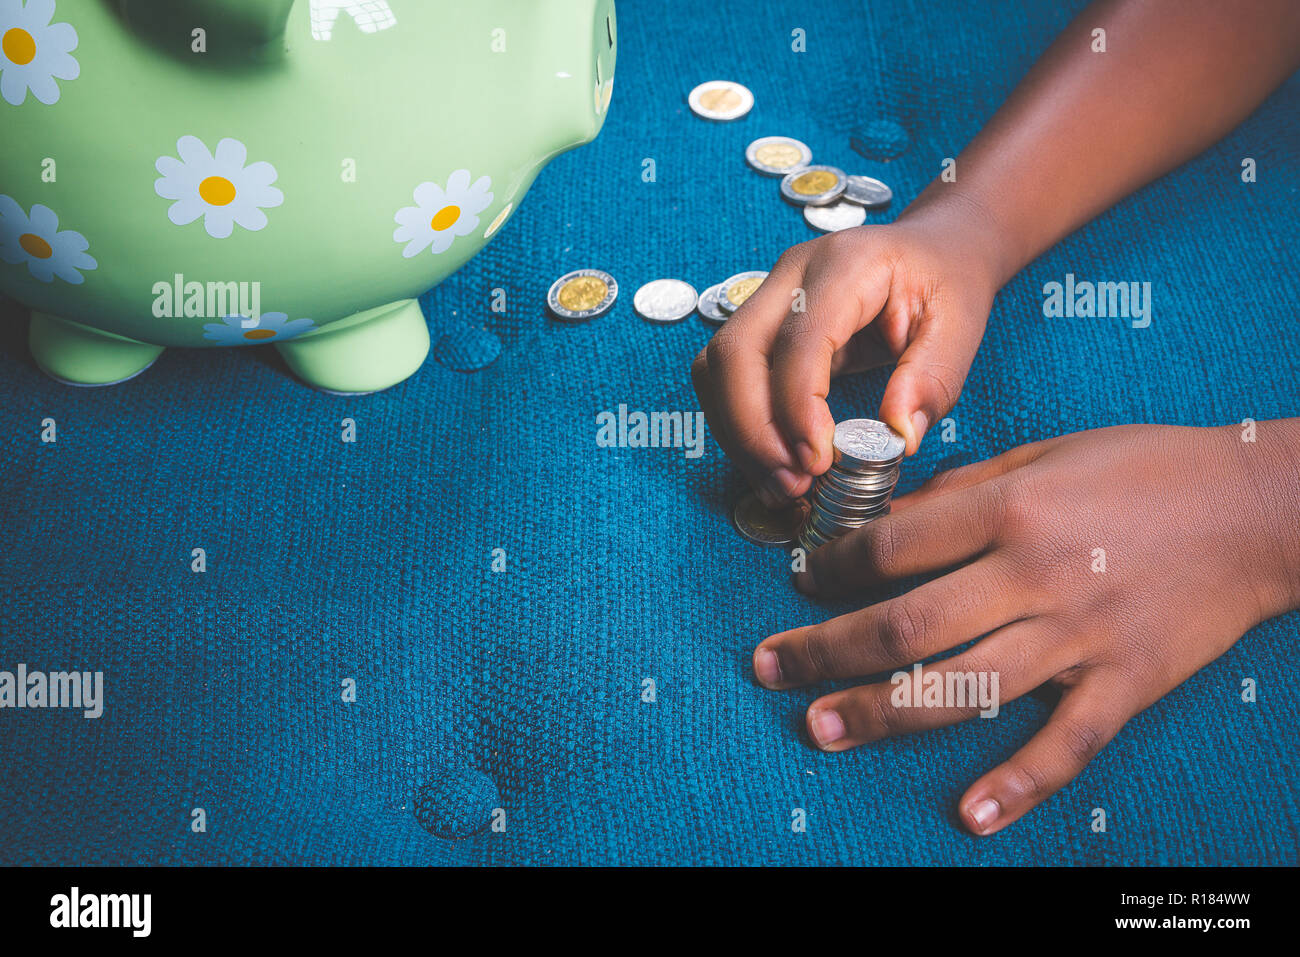 Nigerian Girl Stock Photos & Nigerian Girl Stock Images - Alamy